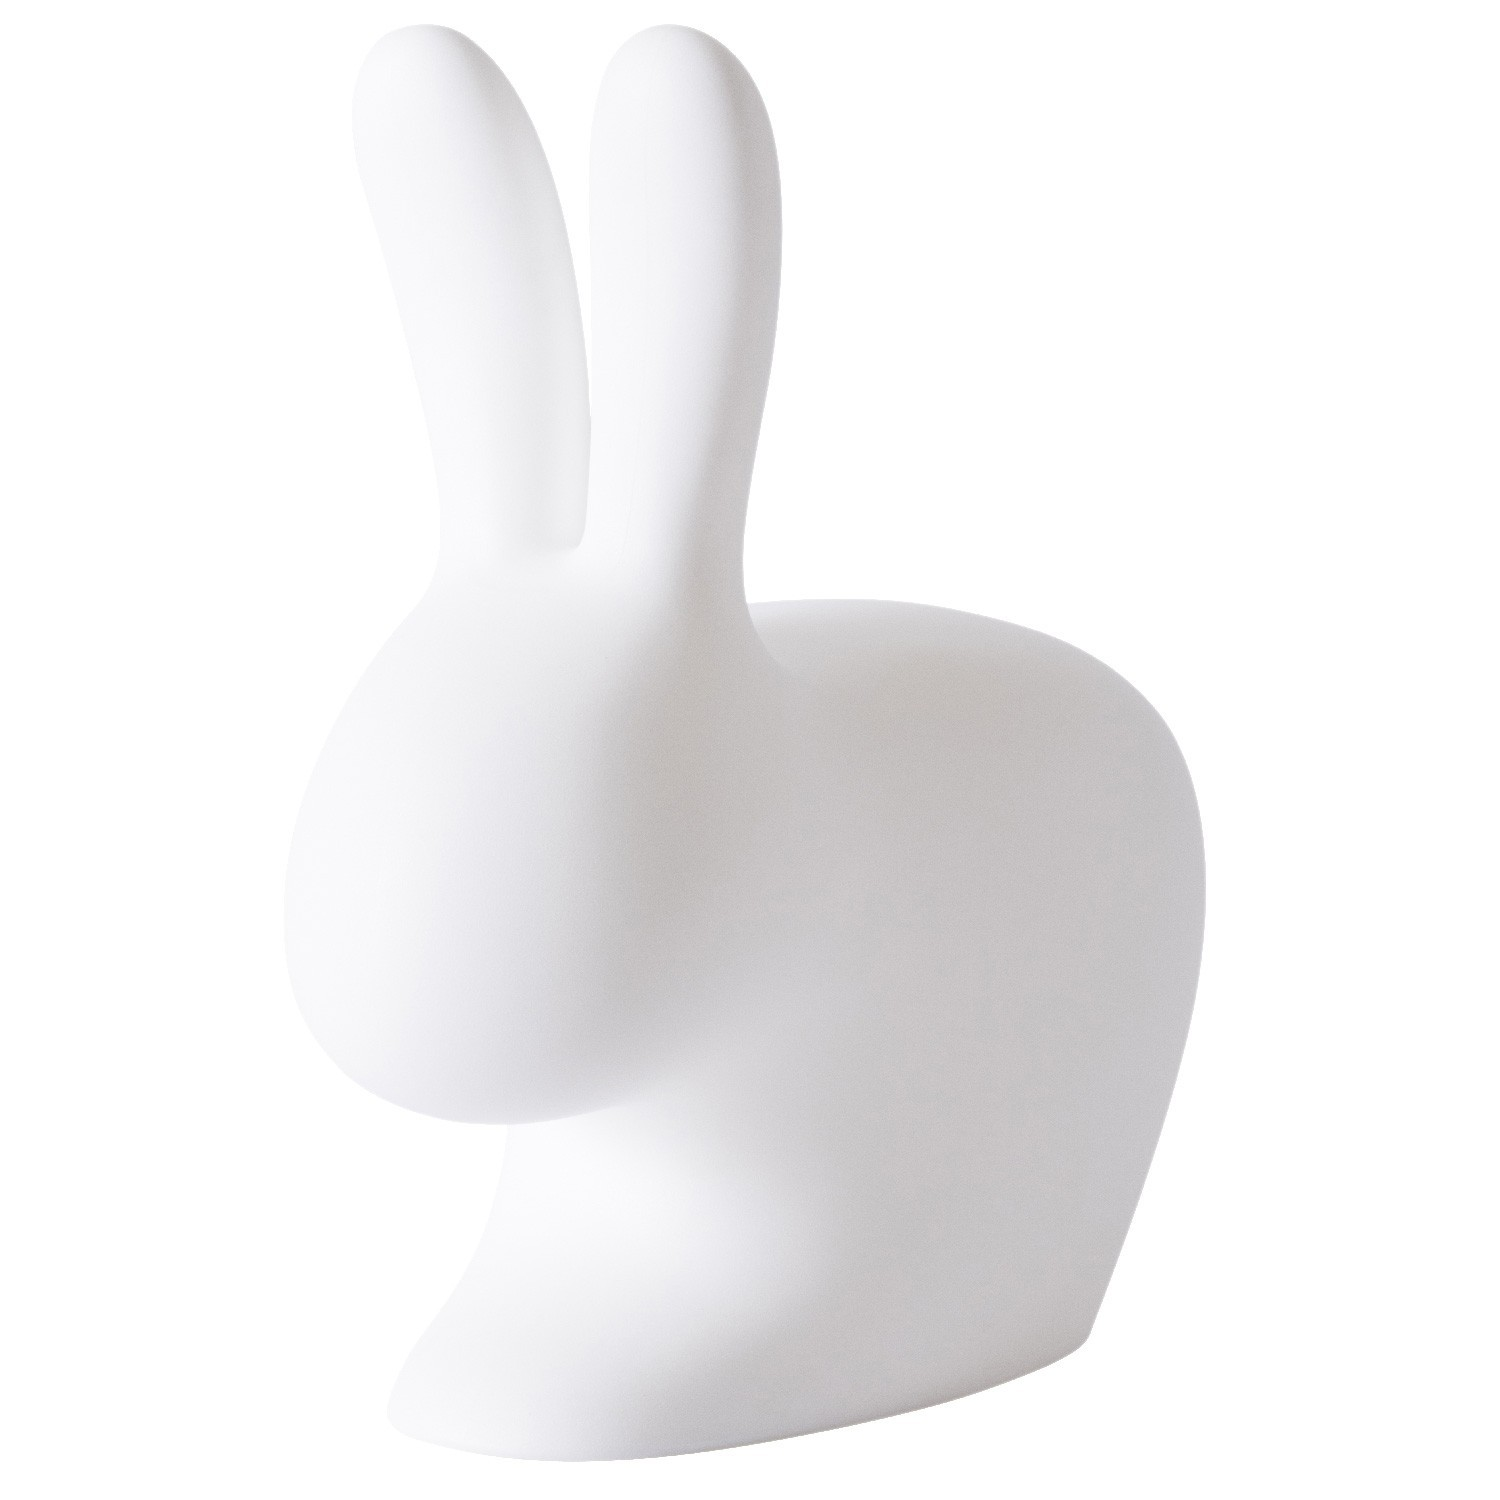 Qeeboo Rabbit Rechargeable LED Lamp, Large, White